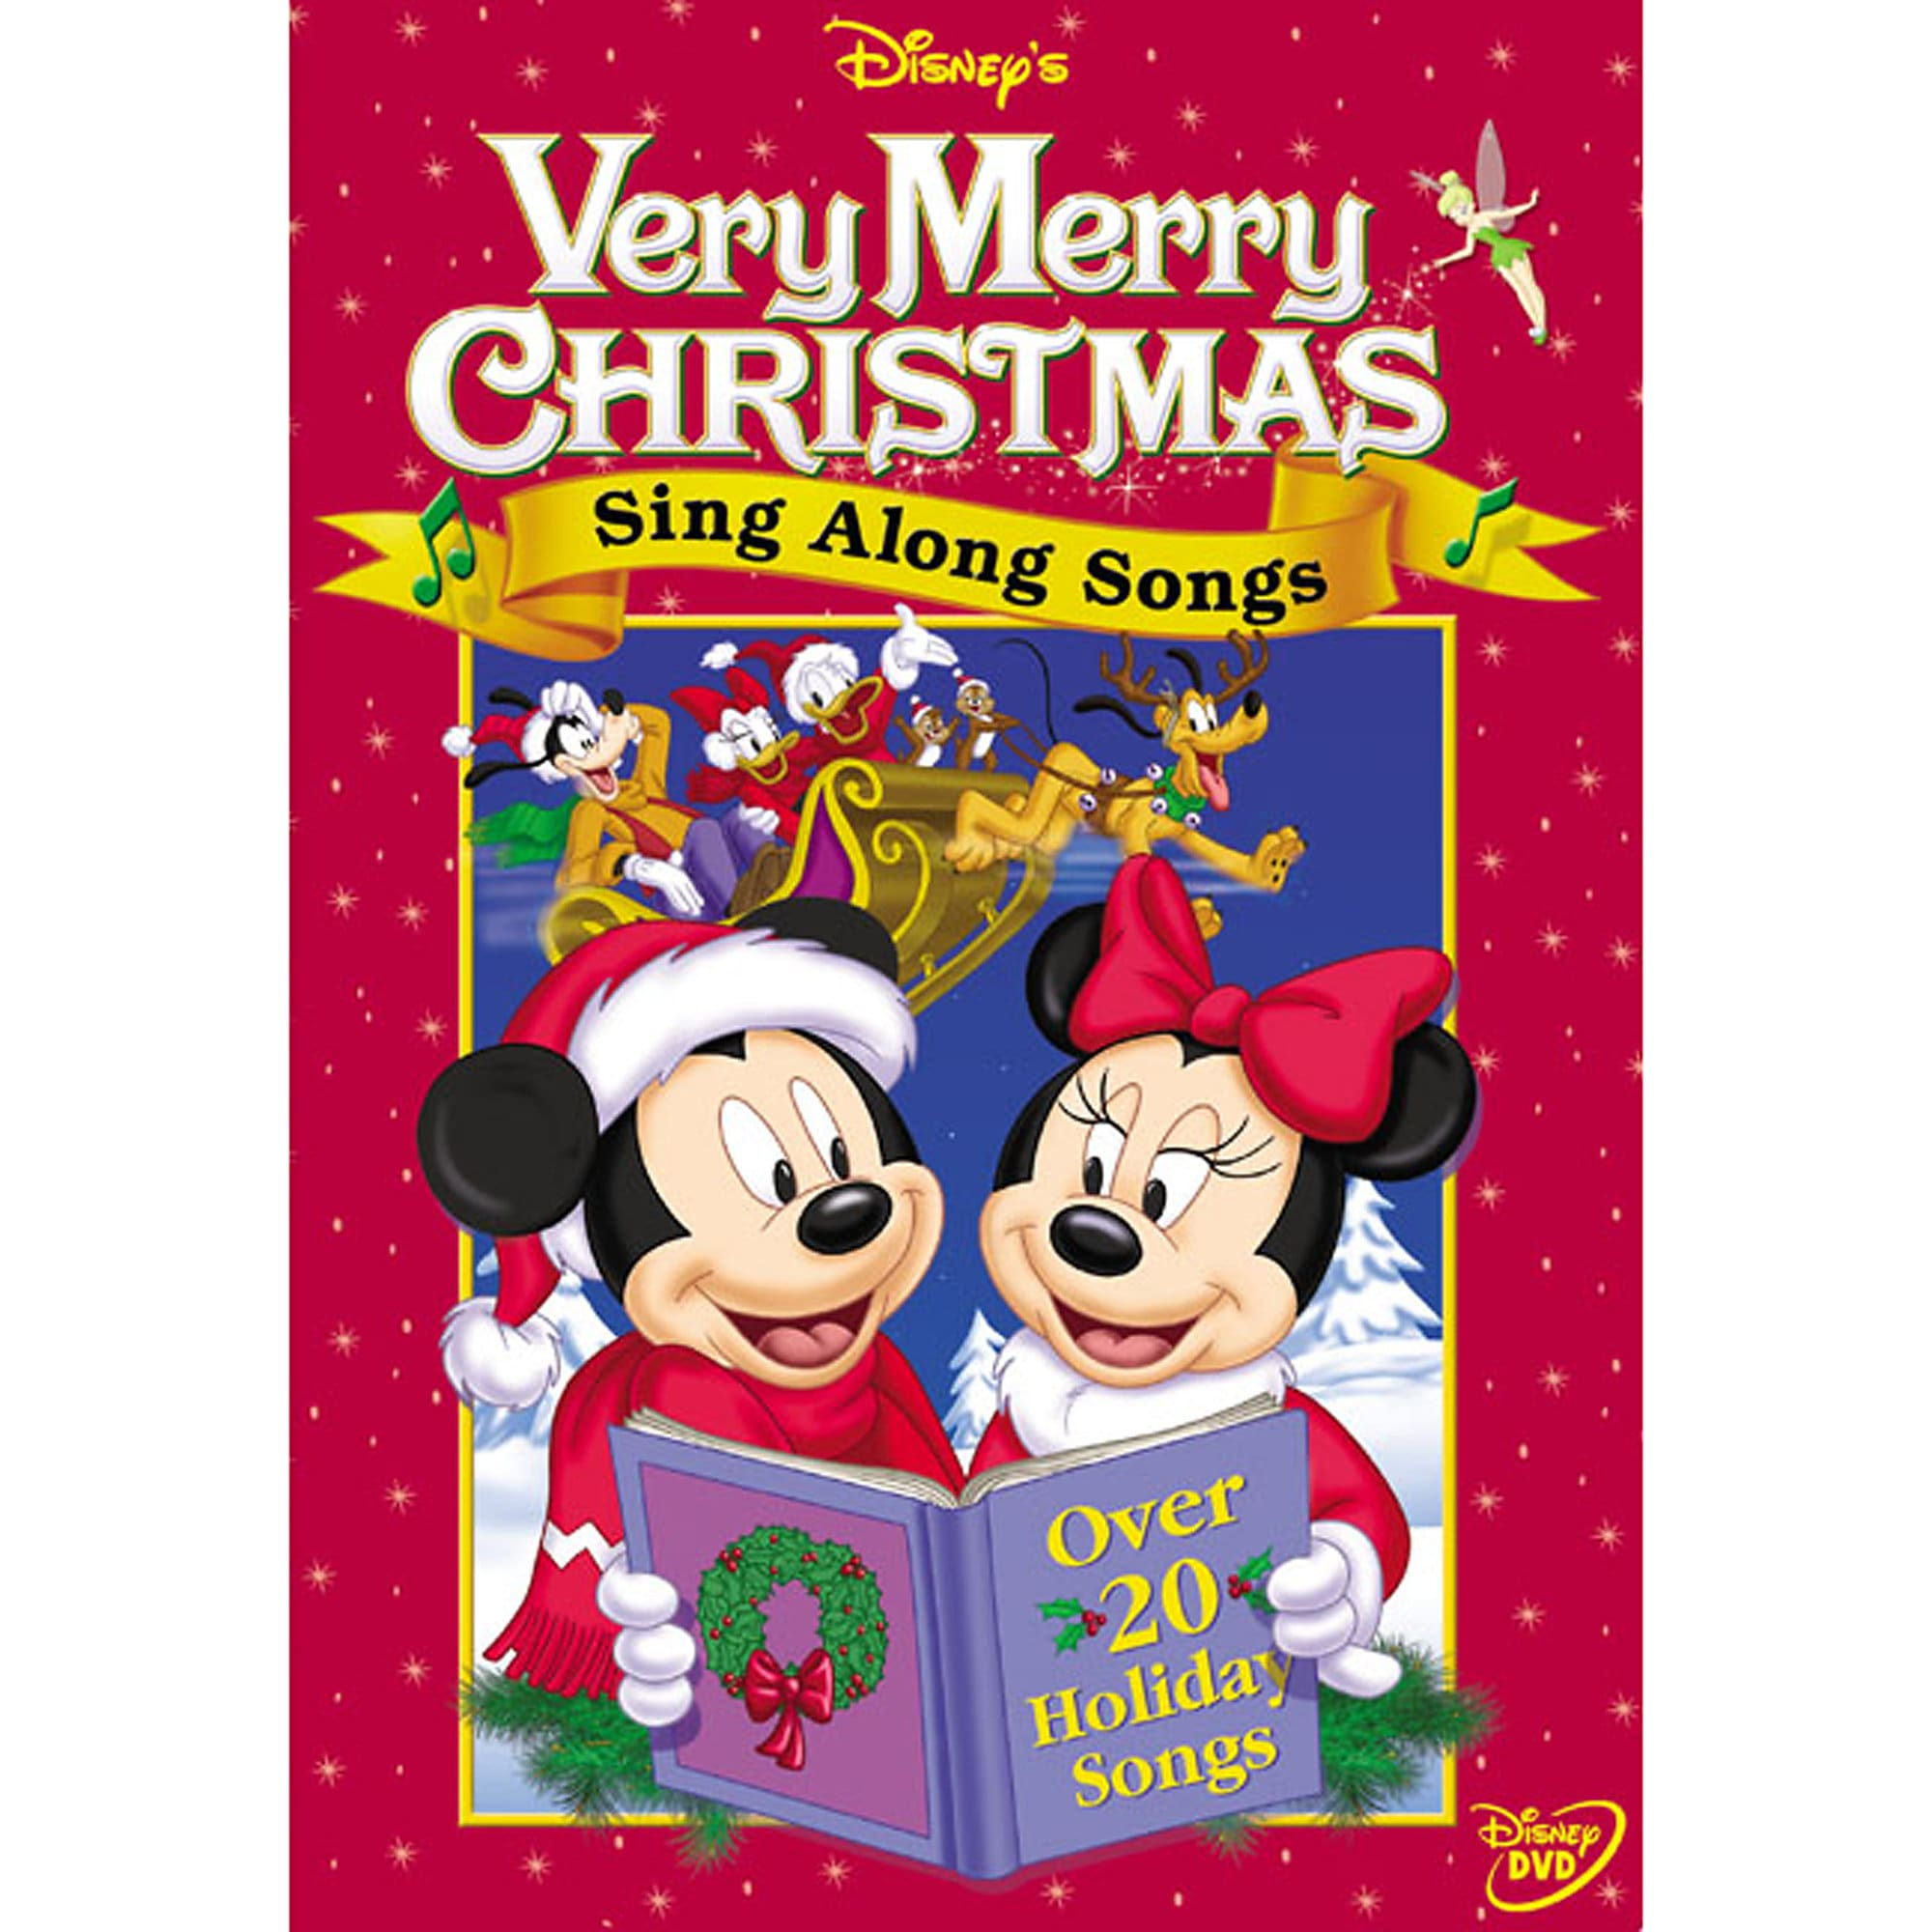 Sing Along Songs: Very Merry Christmas Songs DVD | shopDisney